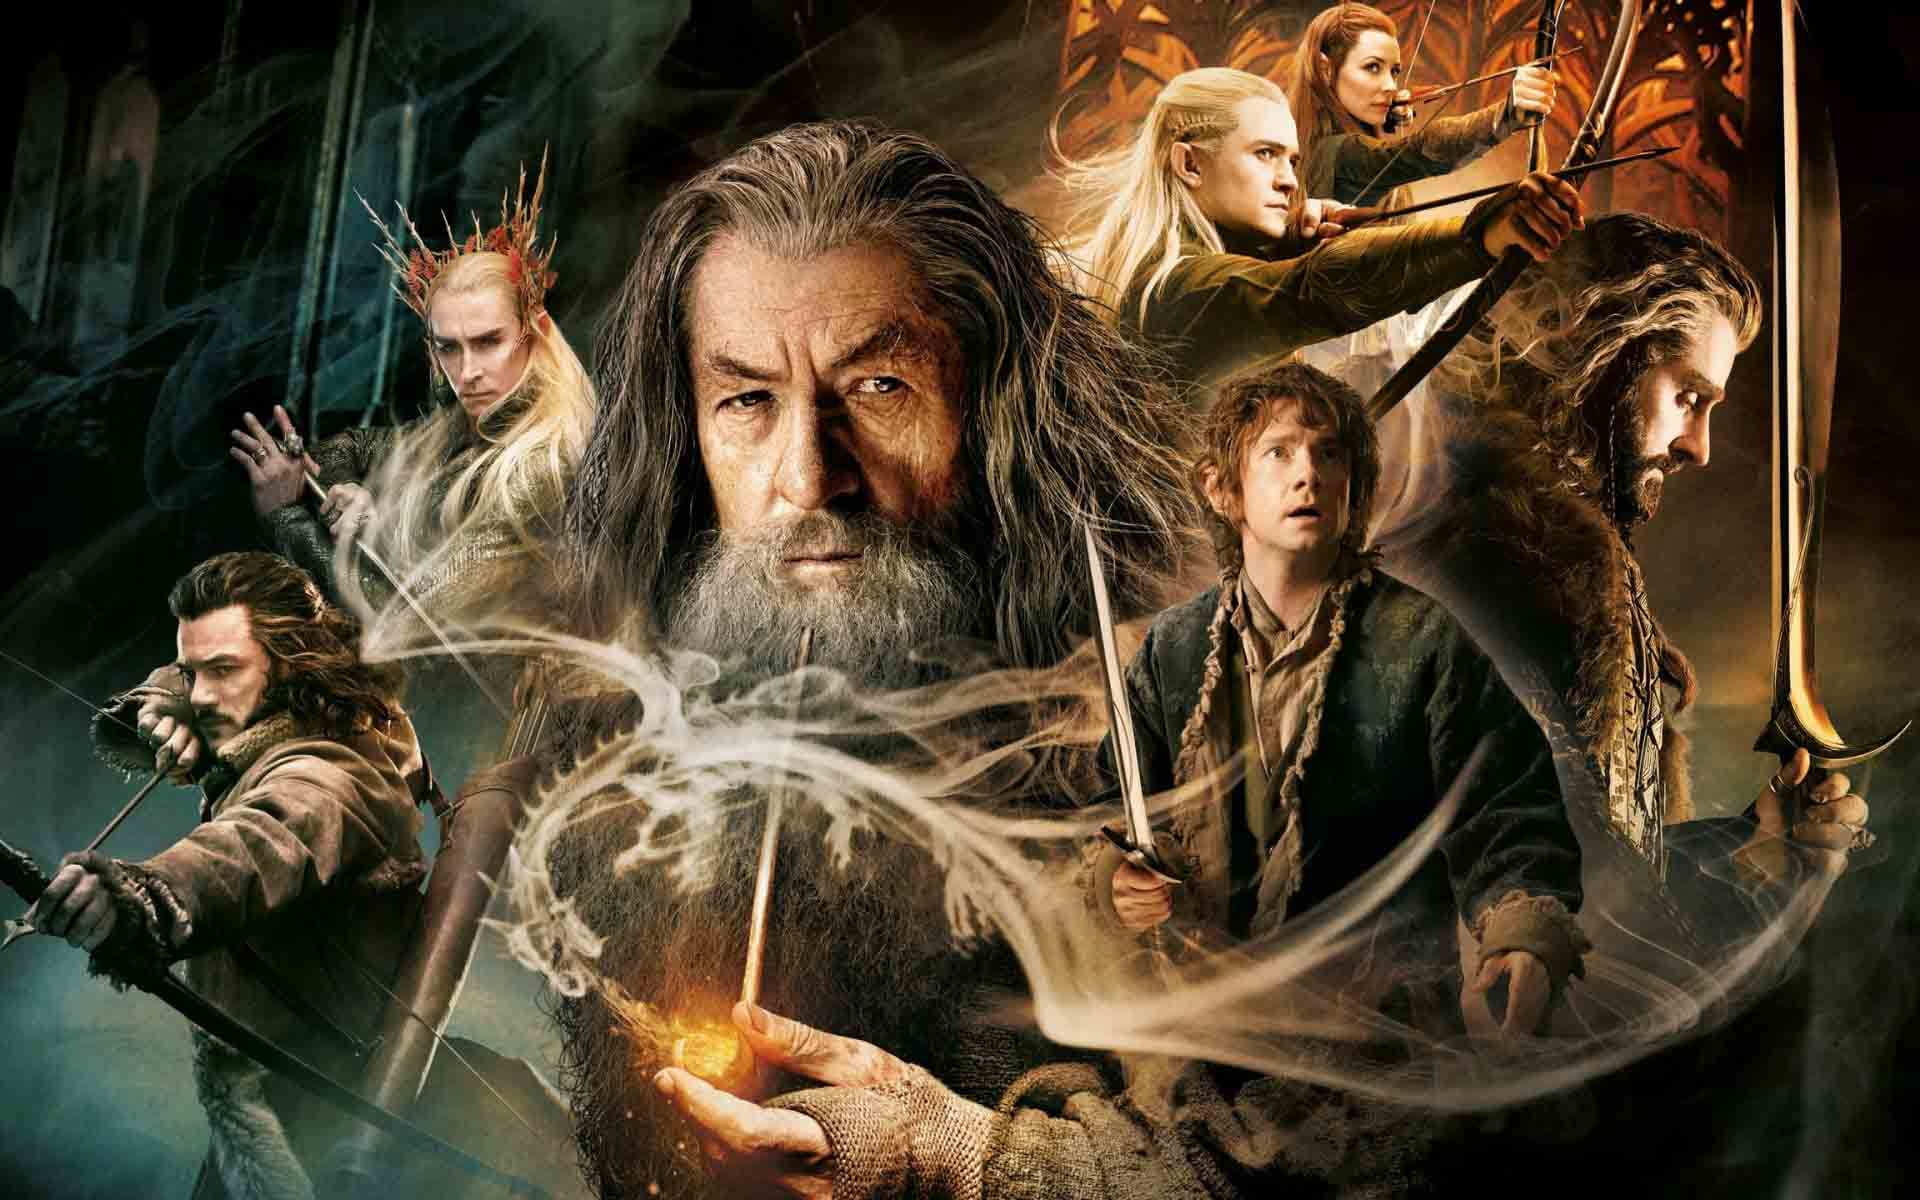 The-Hobbit-The-Desolation-Of-Smaug-HD-Wallpapers-1920x1200